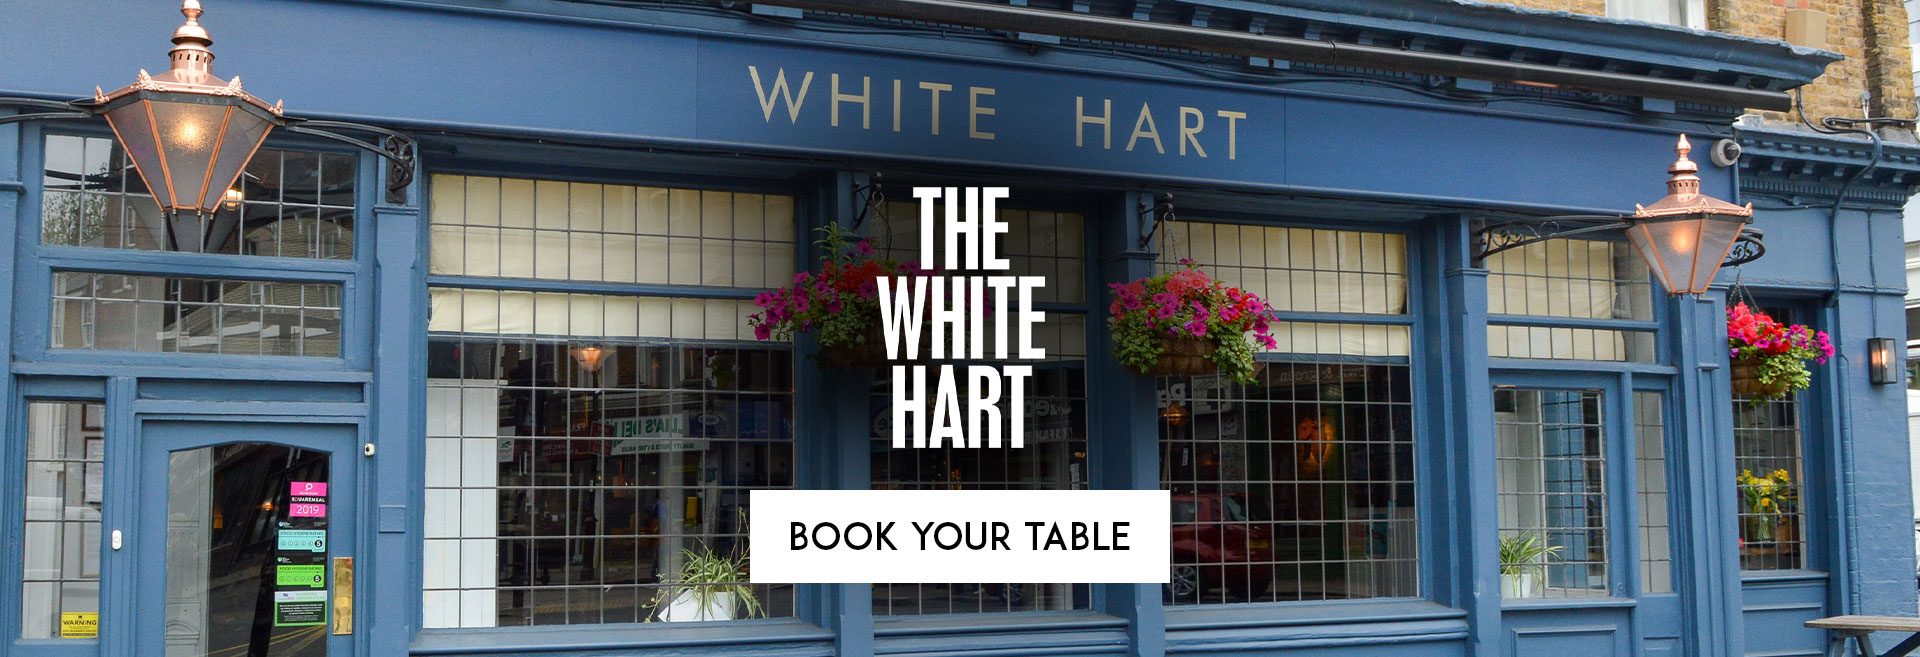 Book Your Table at The White Hart